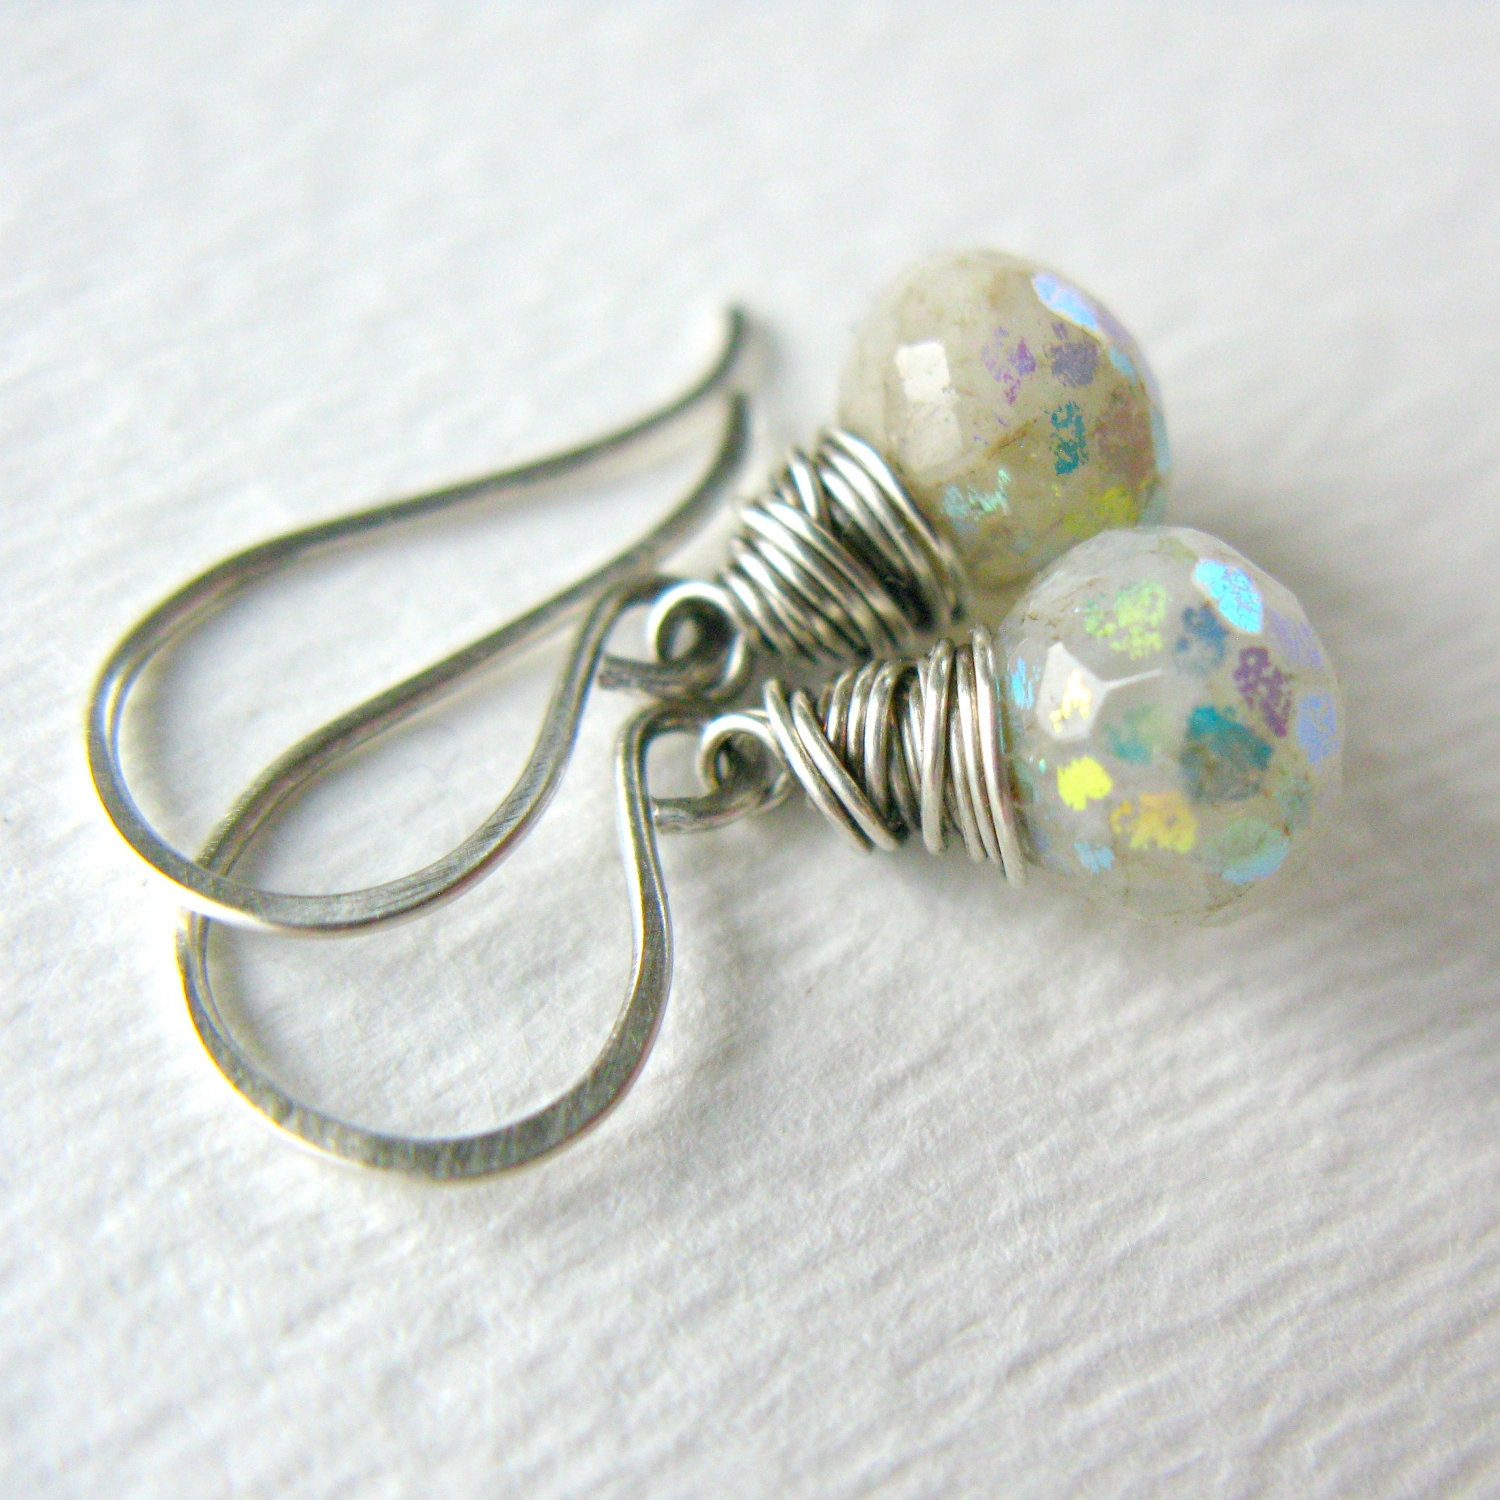 Aquamarine Silver Earrings AB Rainbow Oxidized Sterling Silver Wire Wrapped ..... Spring Showers ..... - SugarRococo